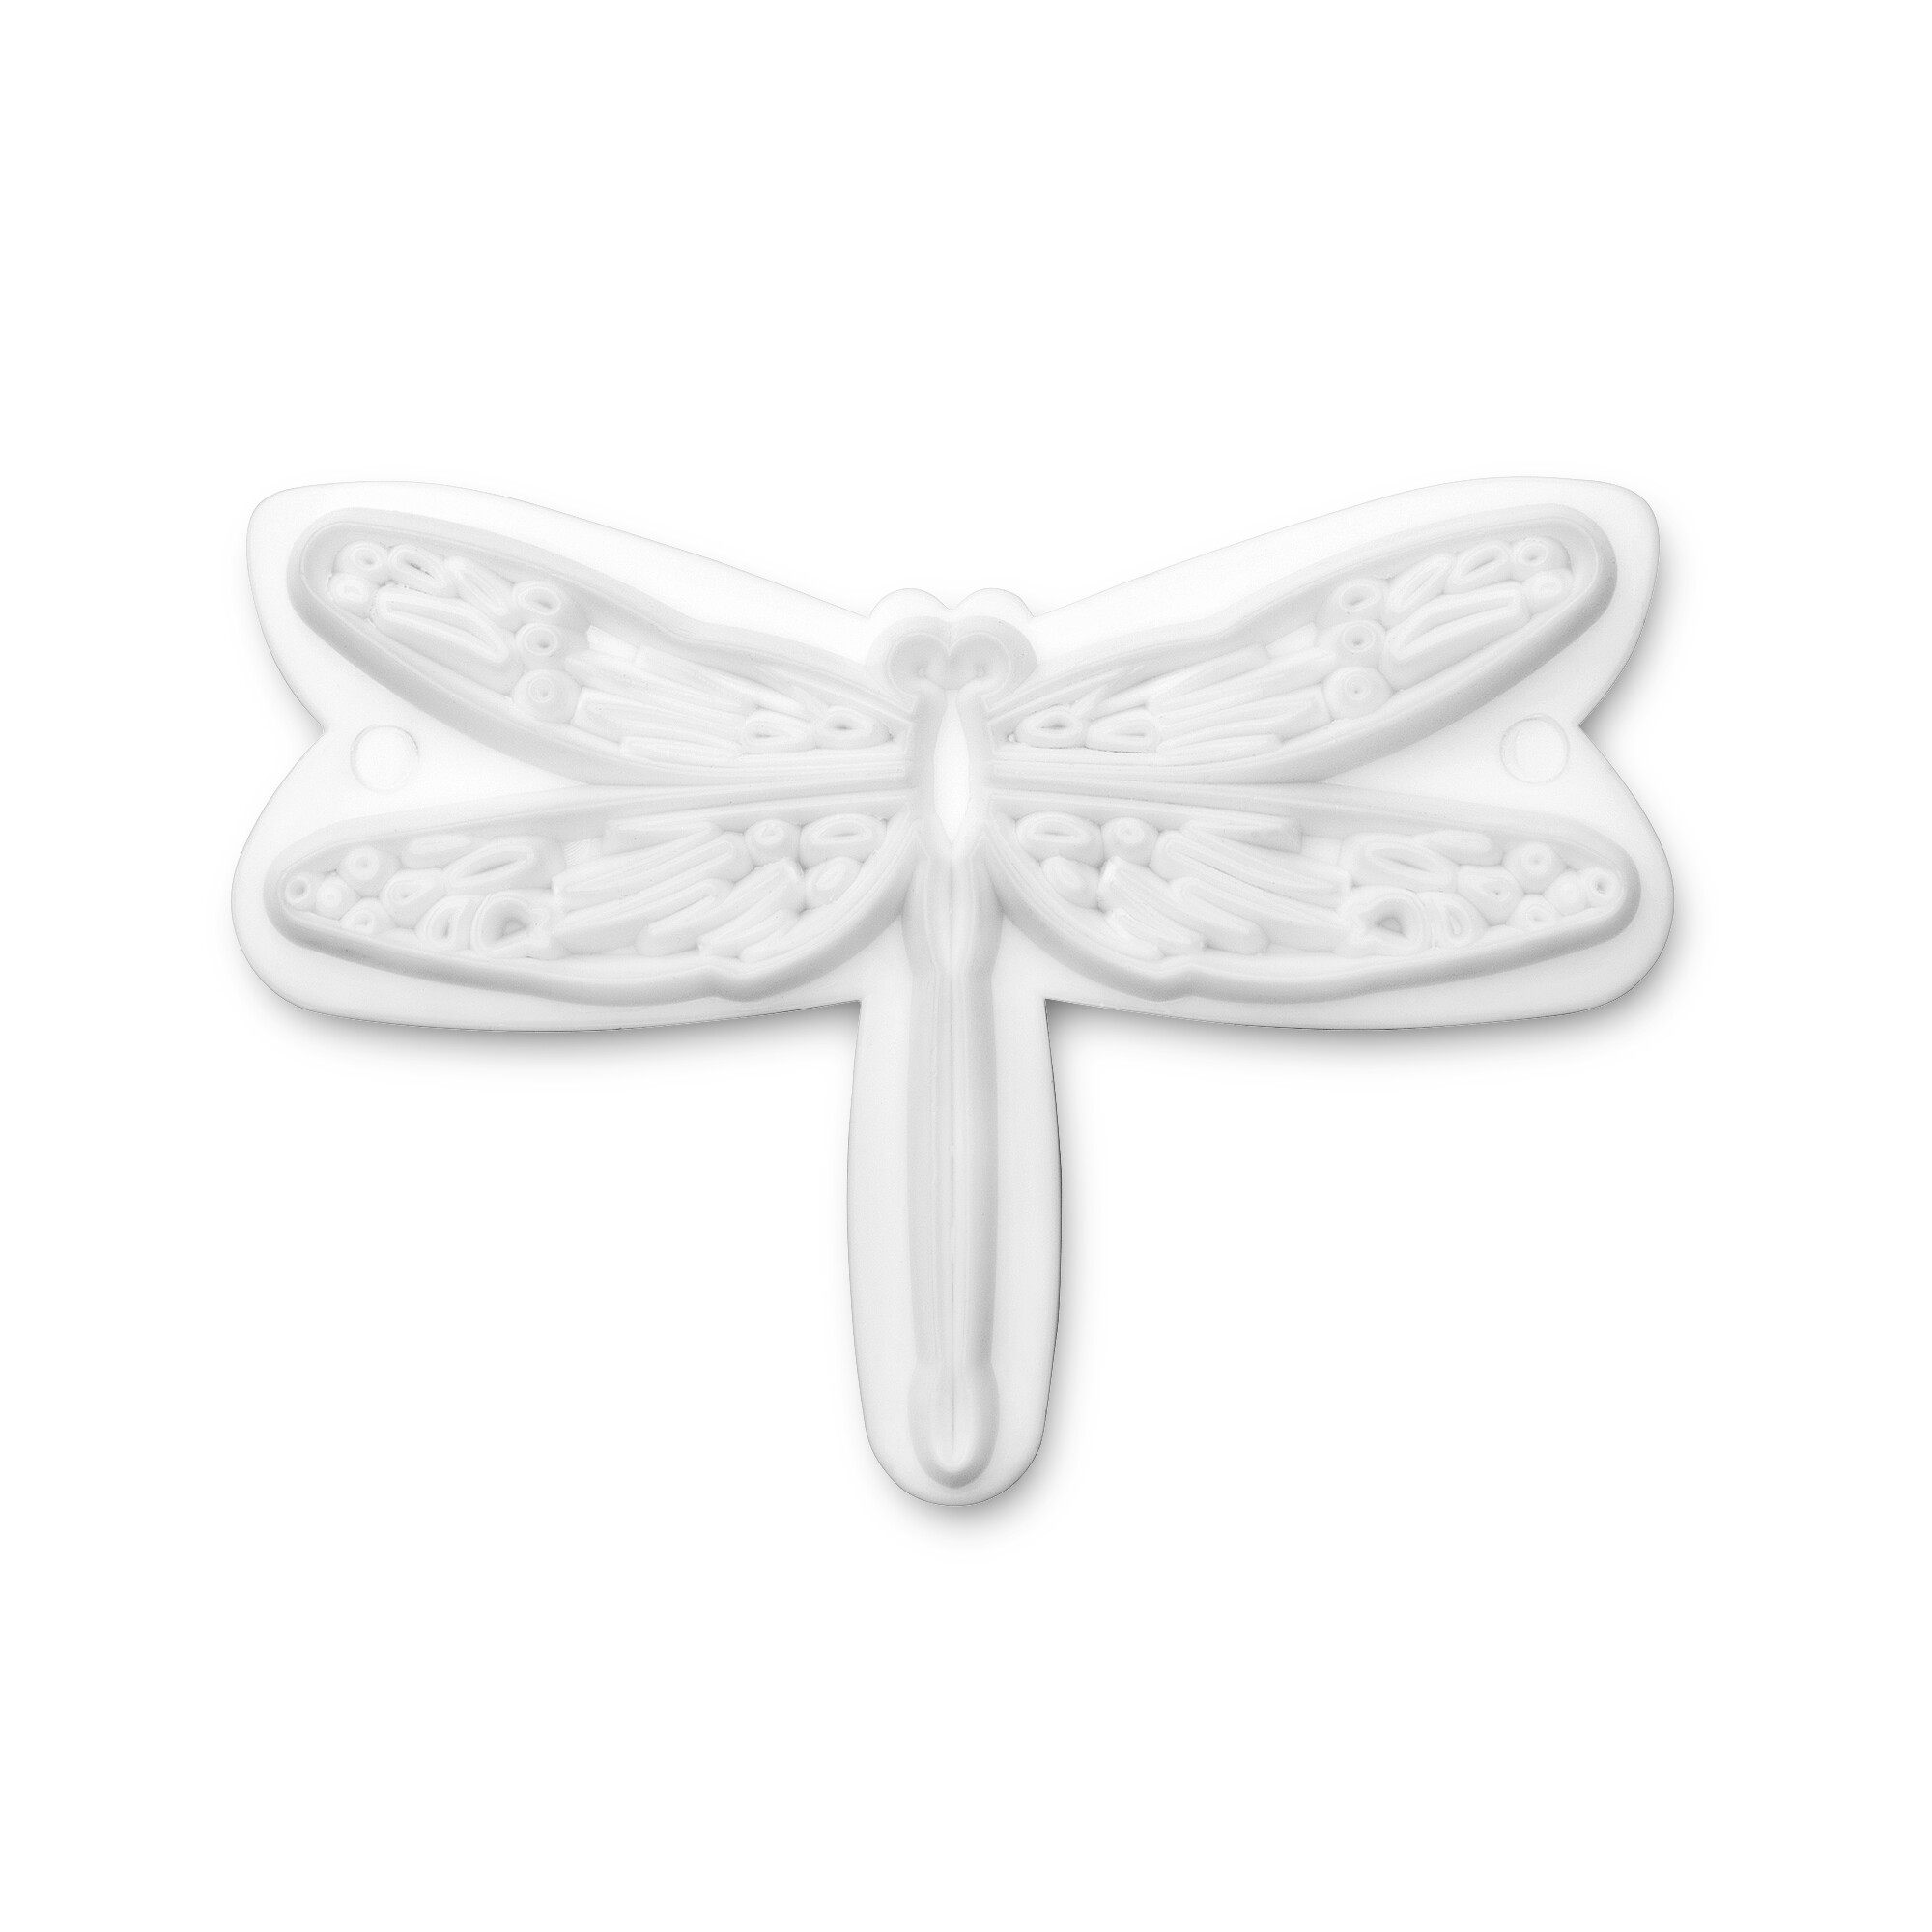 Fondant embossing stamp - Dragonfly